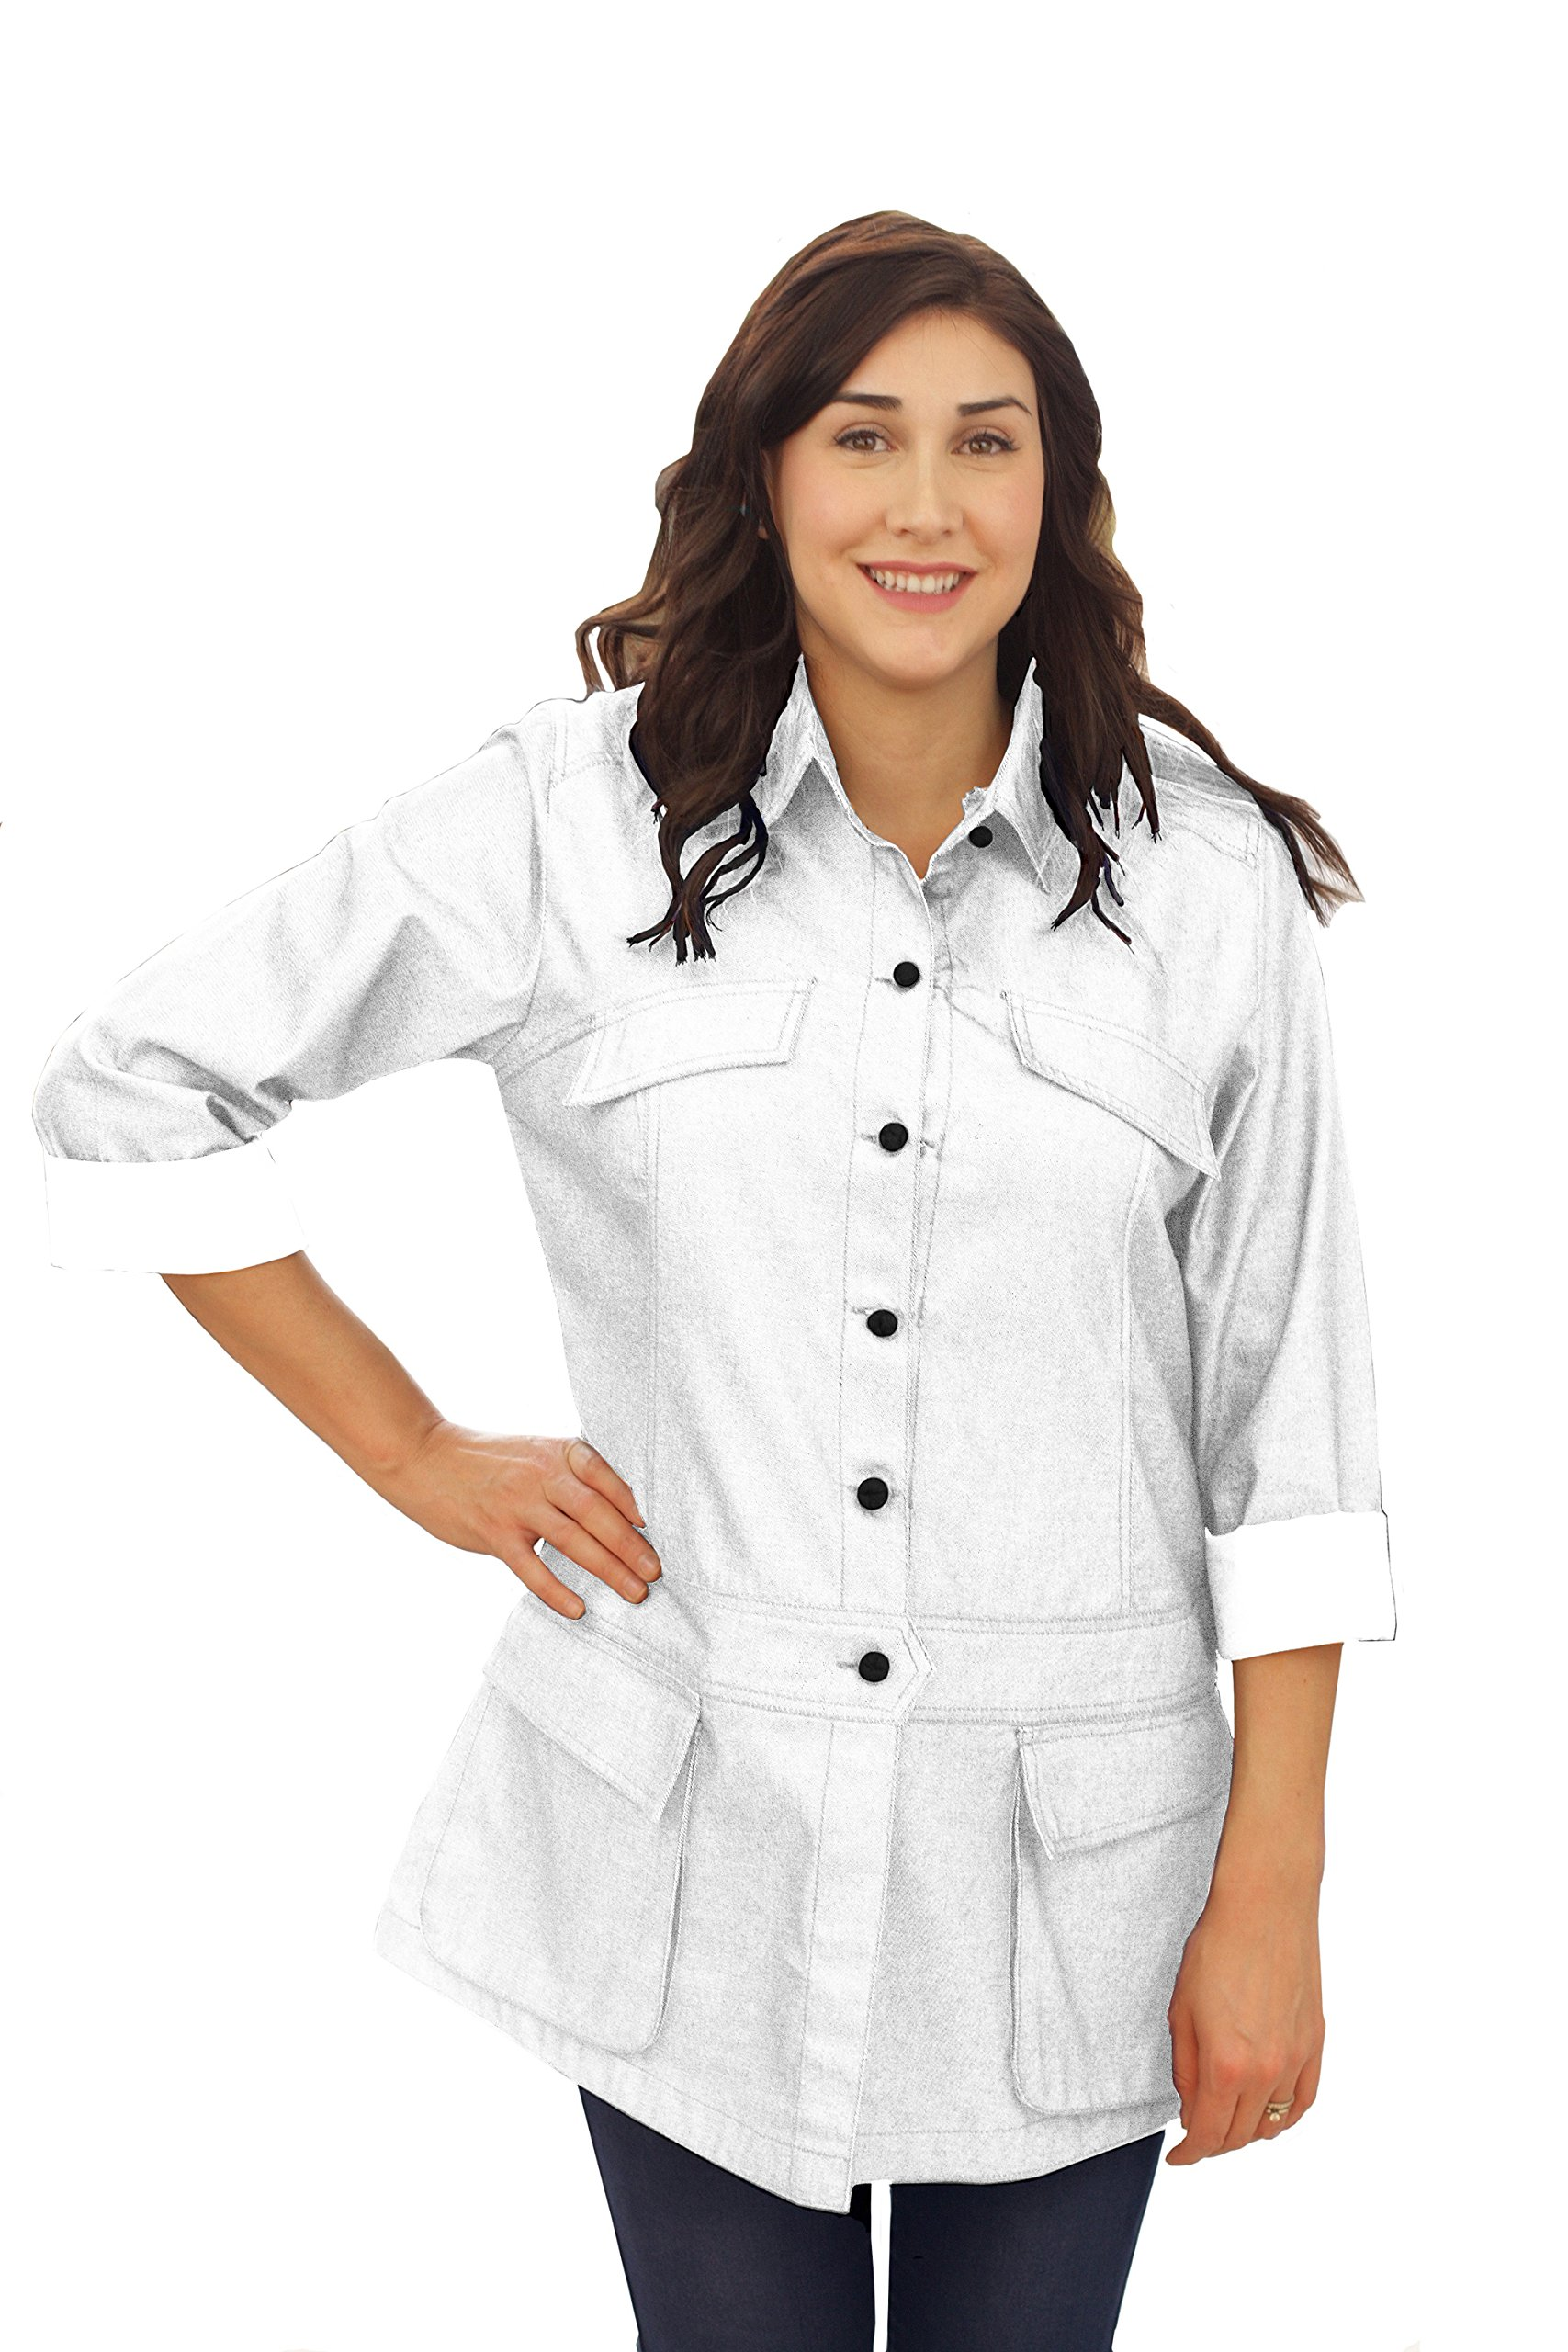 ASD Living Stylized White Denim Long Sleeve Chef Coat,Medium